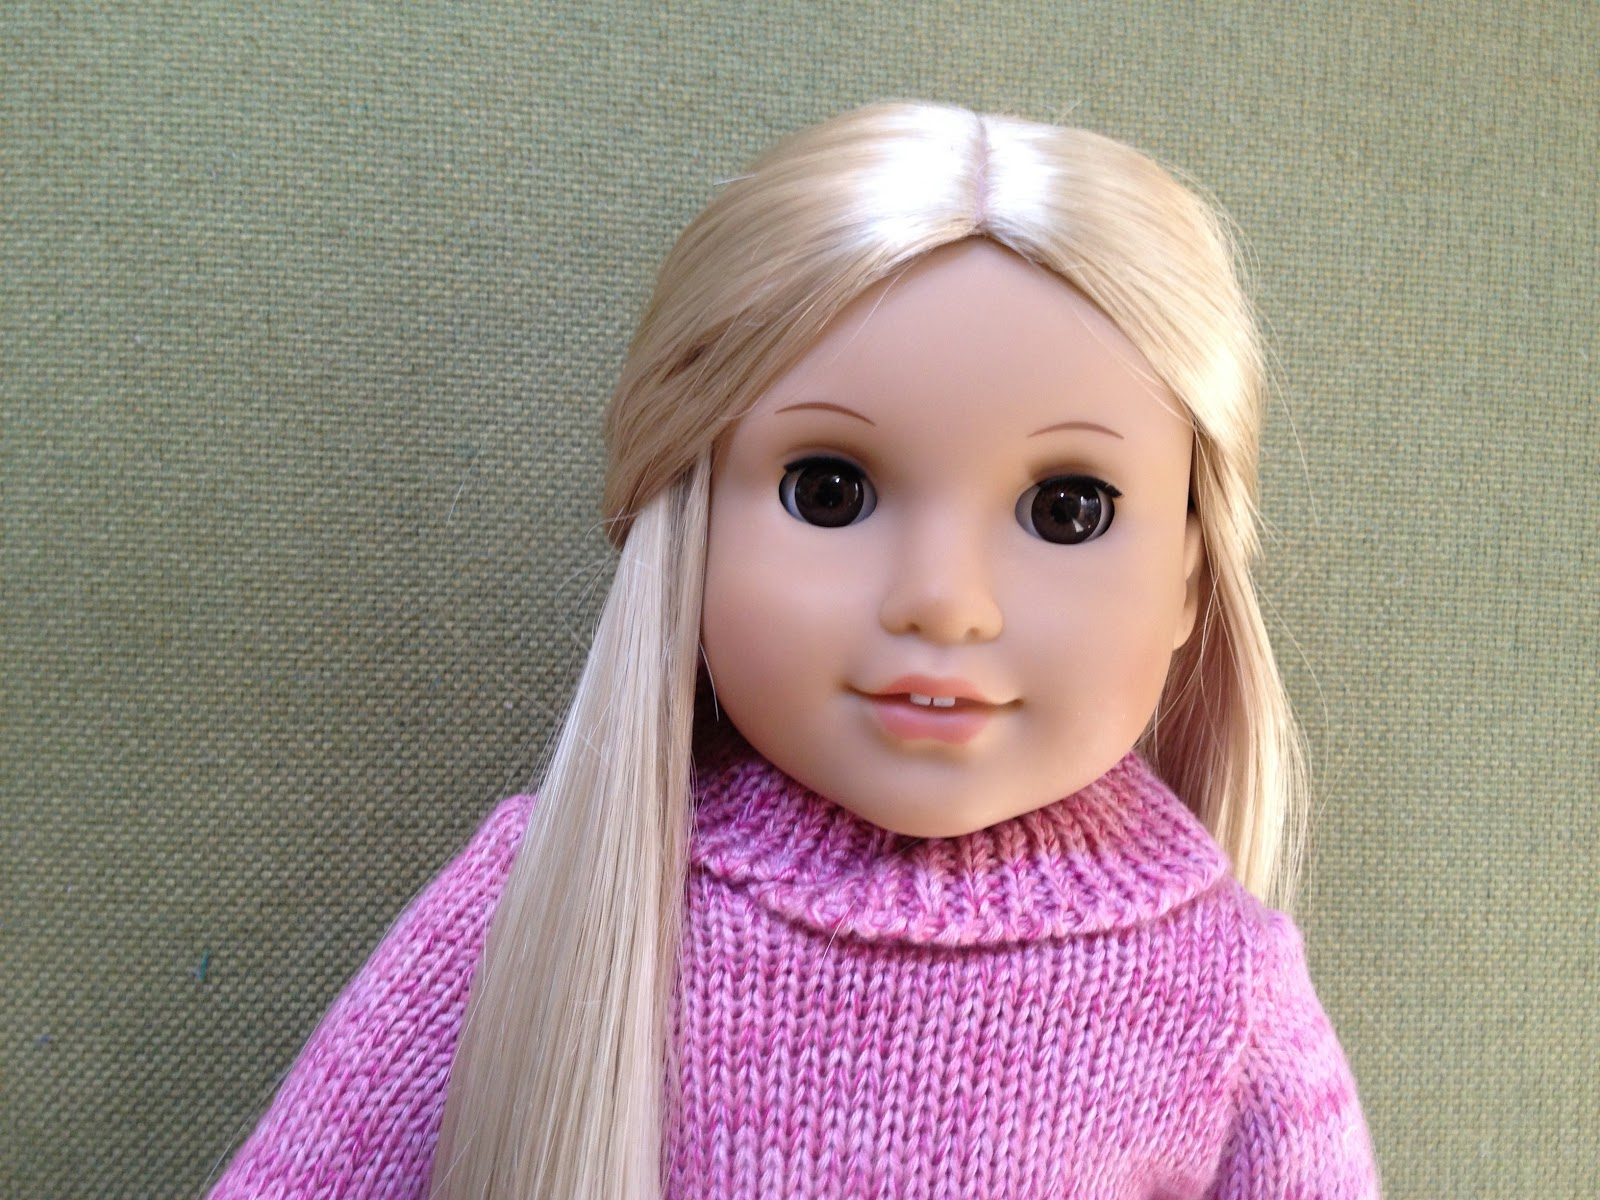 New American Girl doll is That '70s Girl - NY Daily News  |American Doll Julie Albright